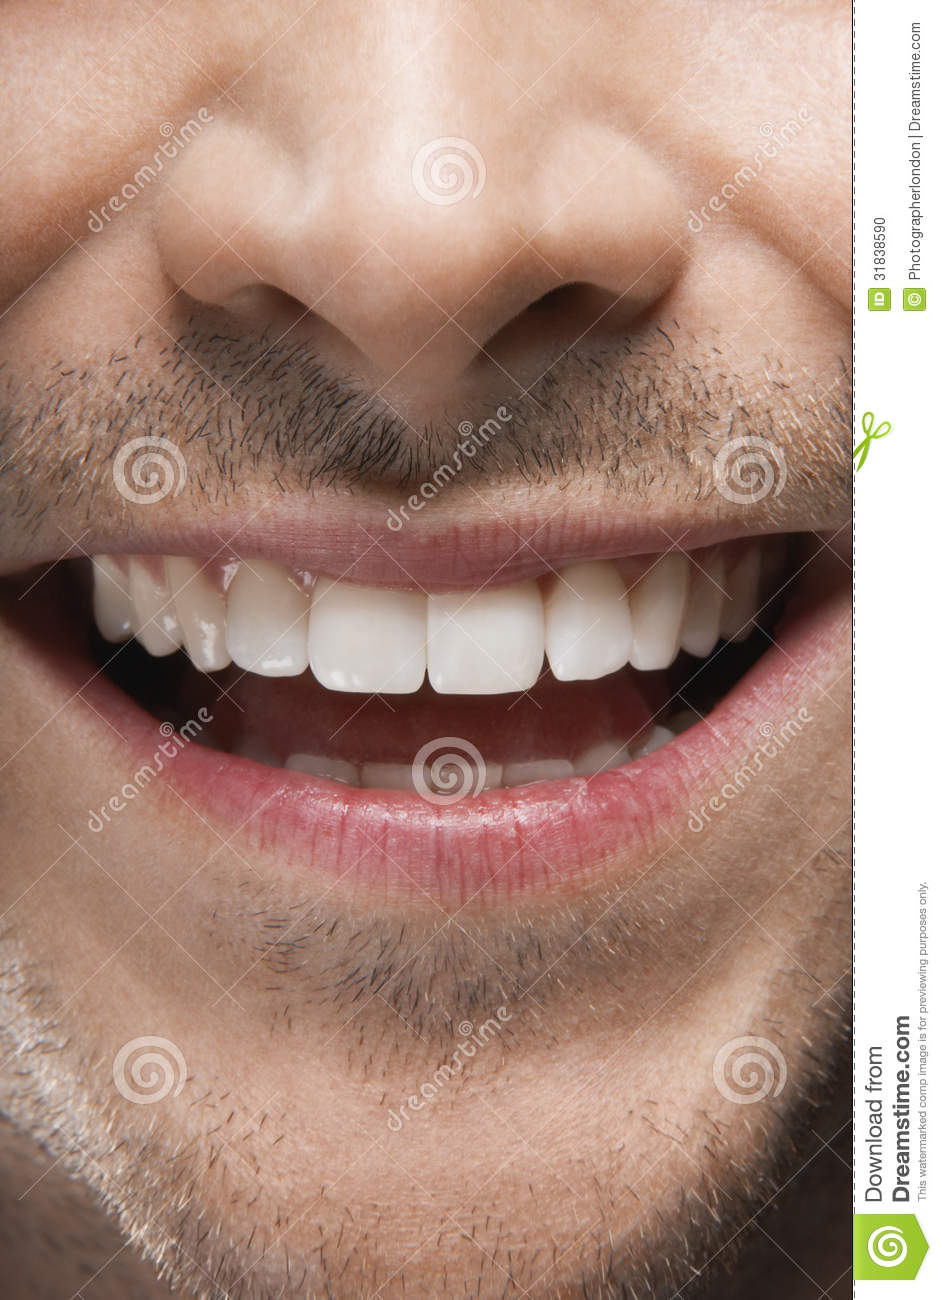 Man Smiling With Perfect White Teeth Stock Photo - Image ...